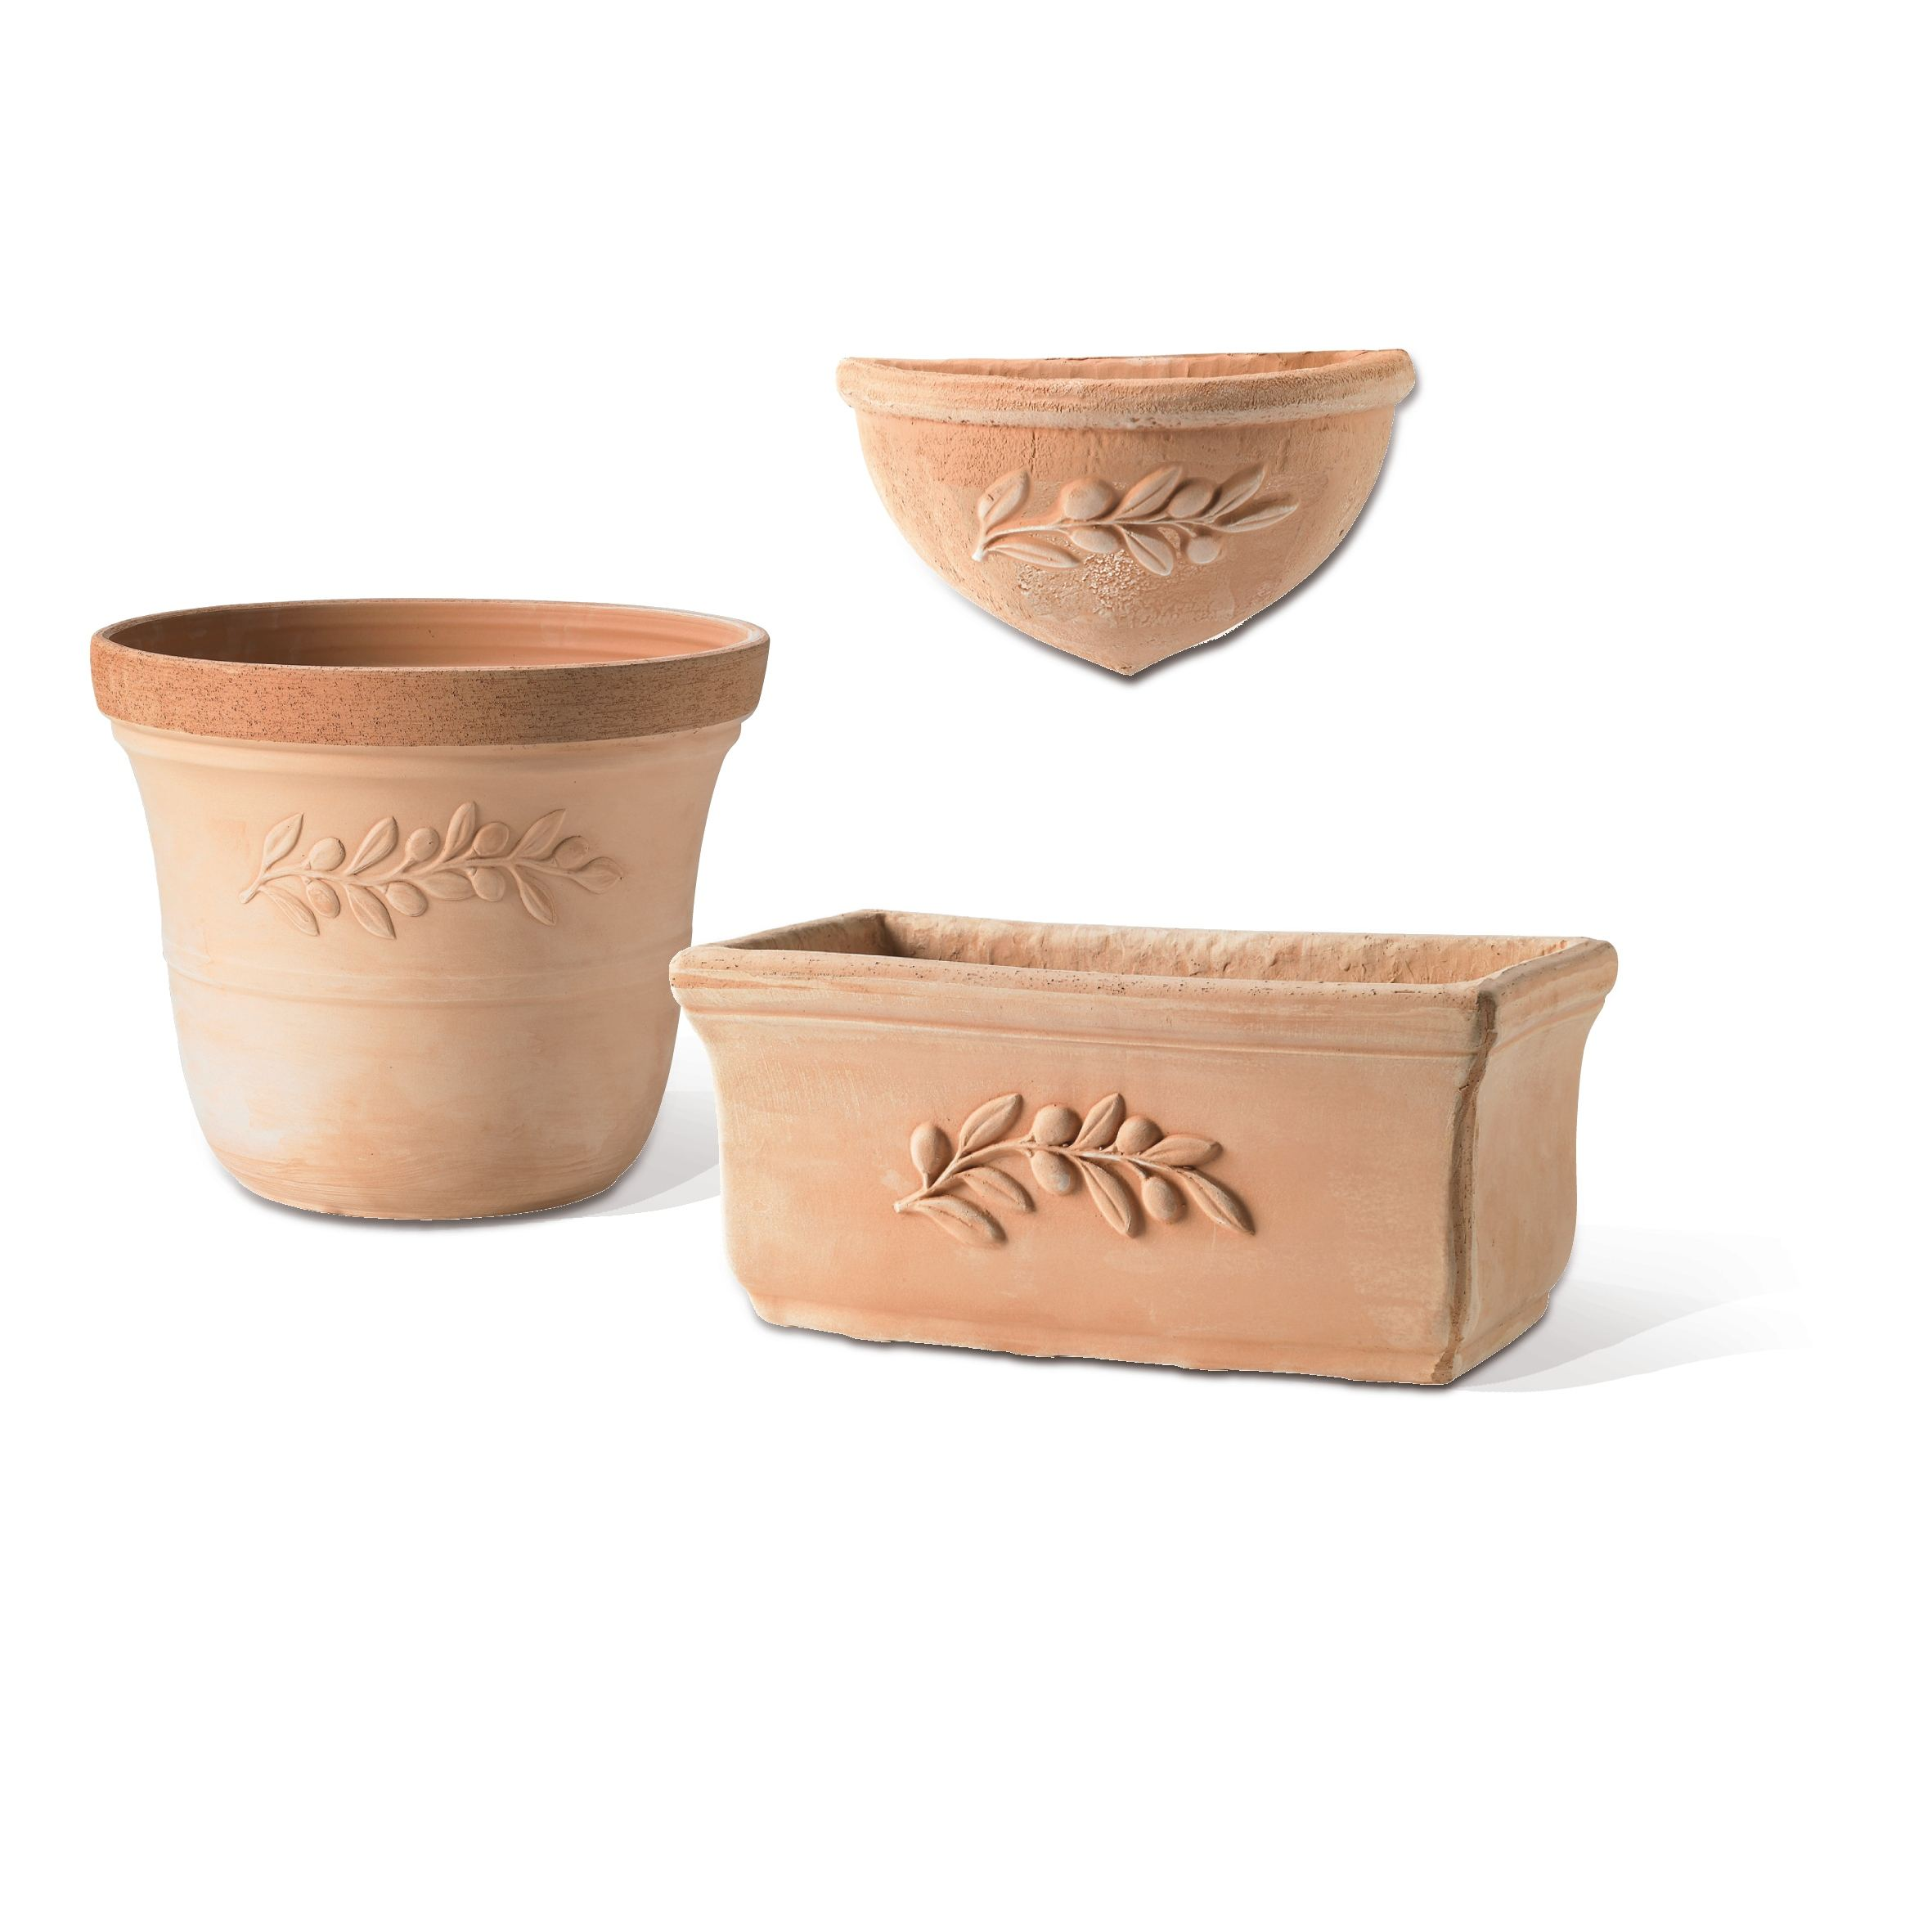 High Quality Galestro Clay Outdoor Flower Pot Olive Round H87020 Handmade Made in Italy